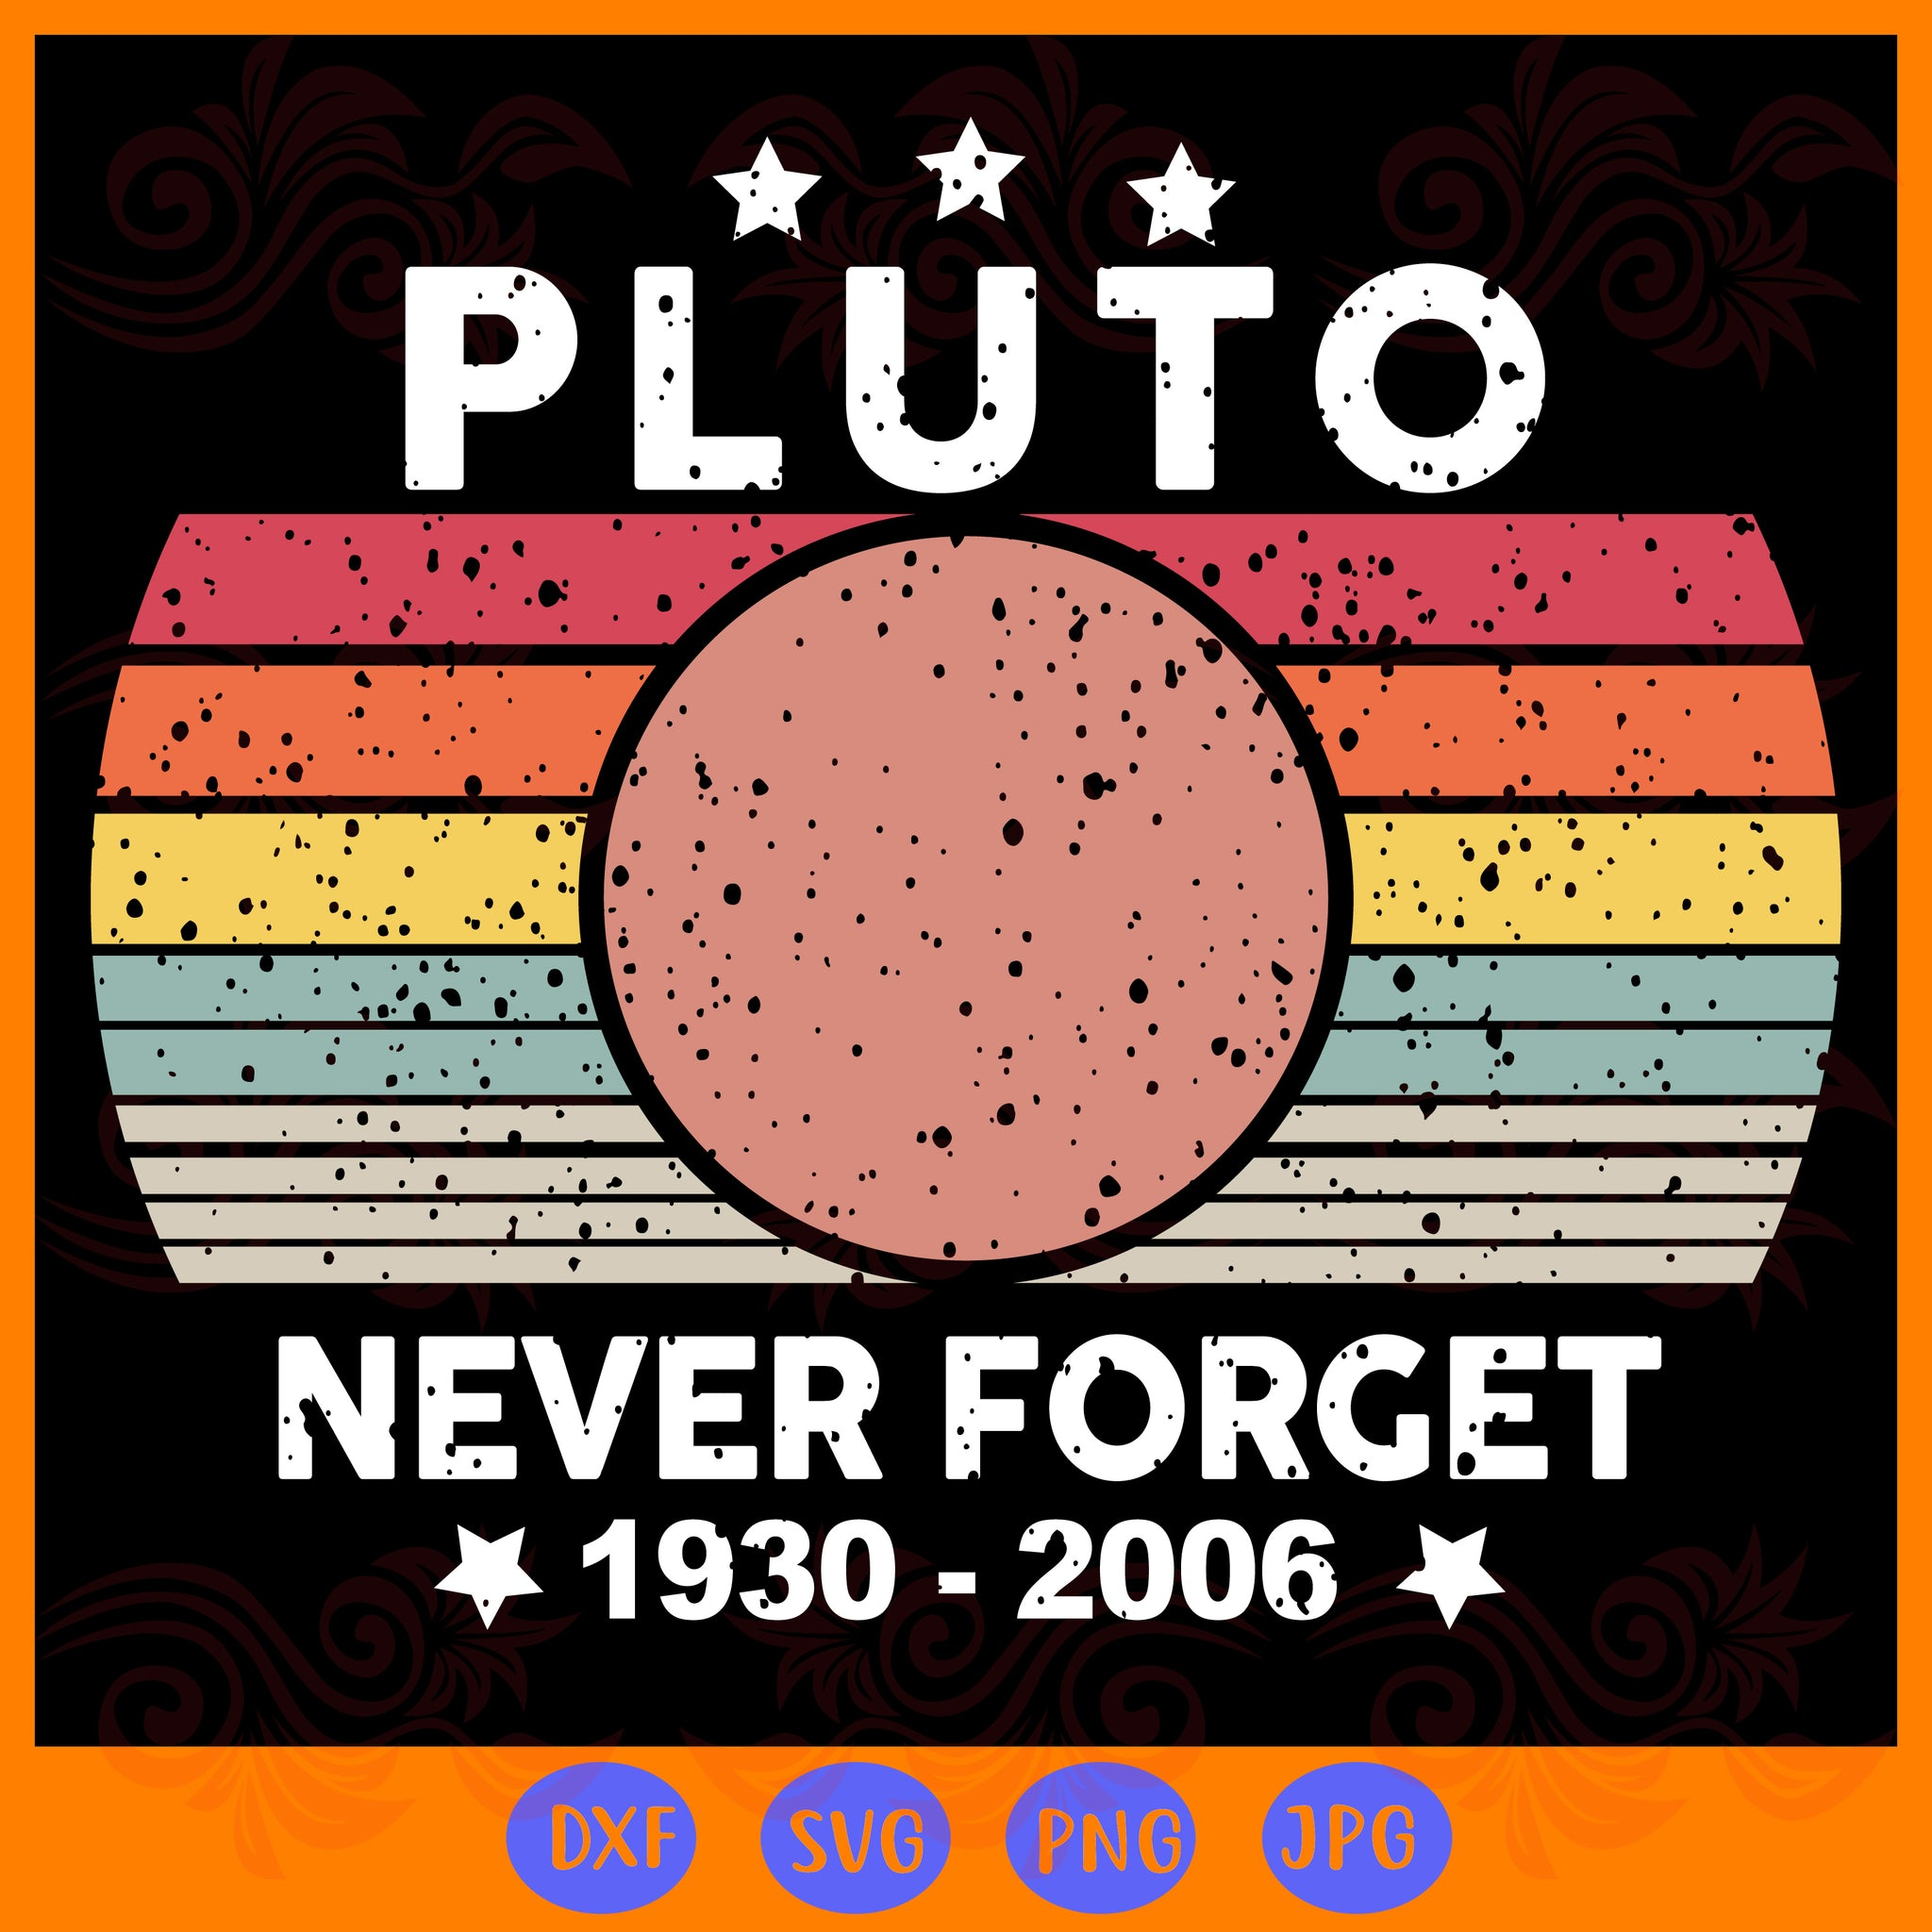 Never forget pluto, PNG, DXF, SVG